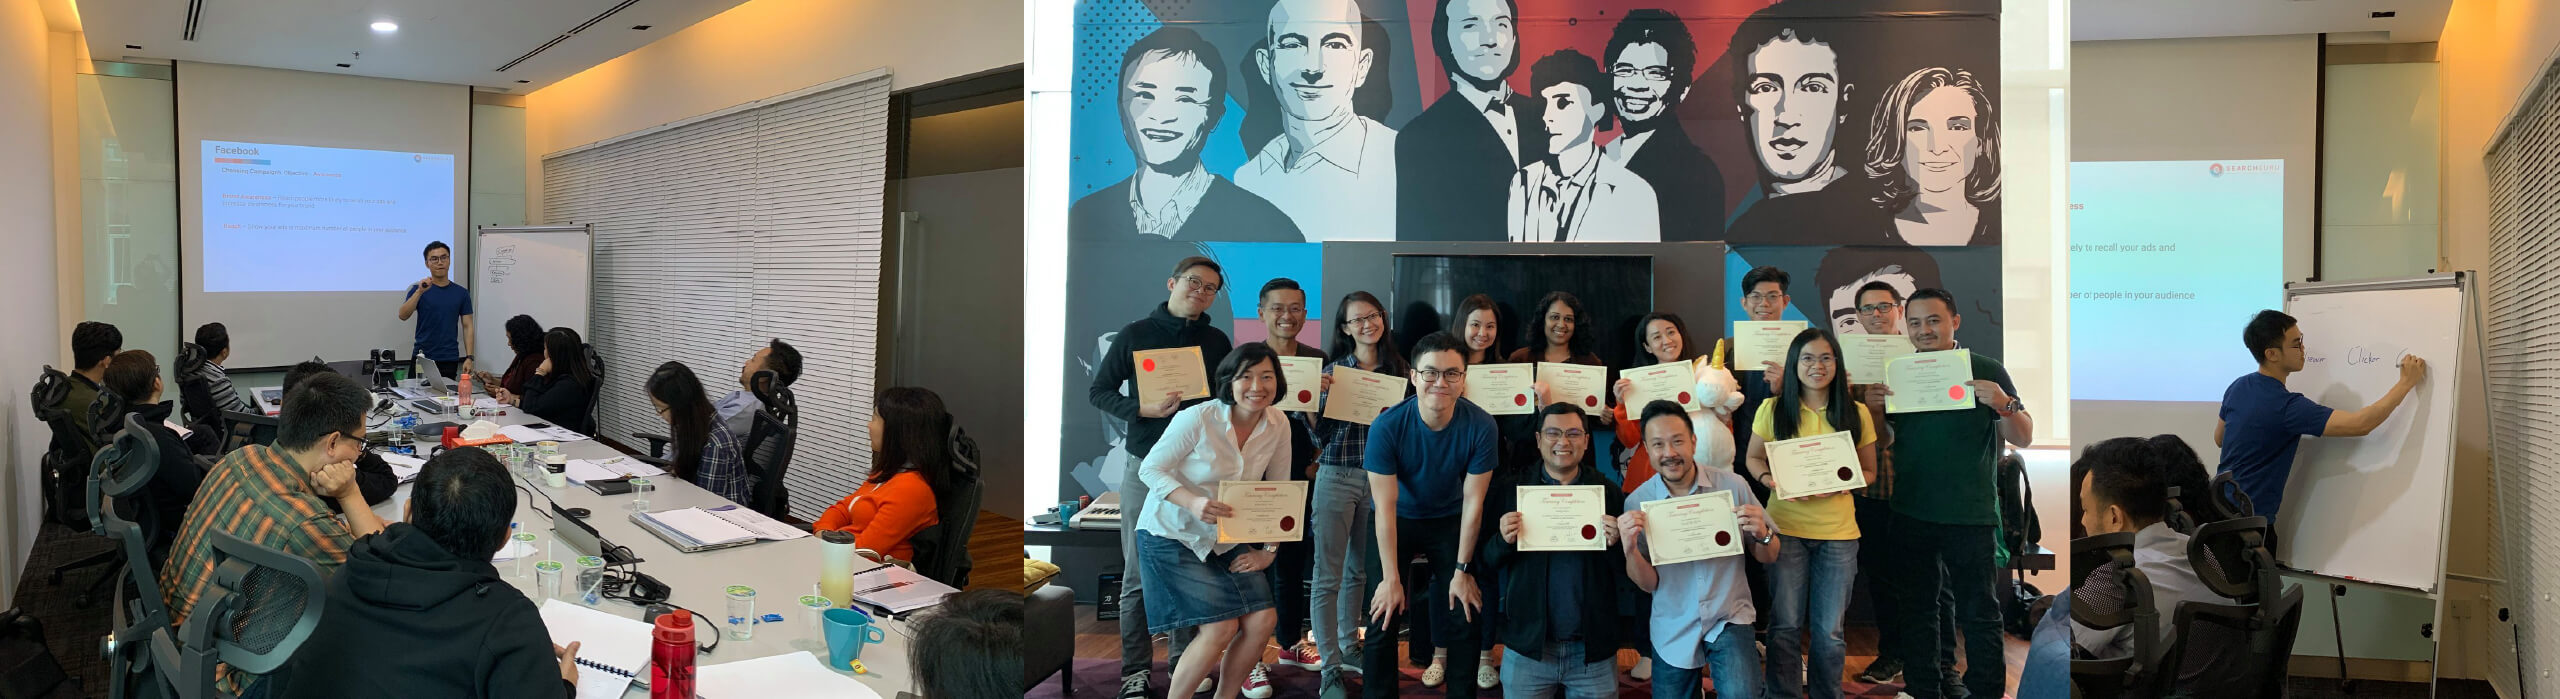 Our participants from The Star have levelled up their digital marketing game with our in-house training. Way to go!